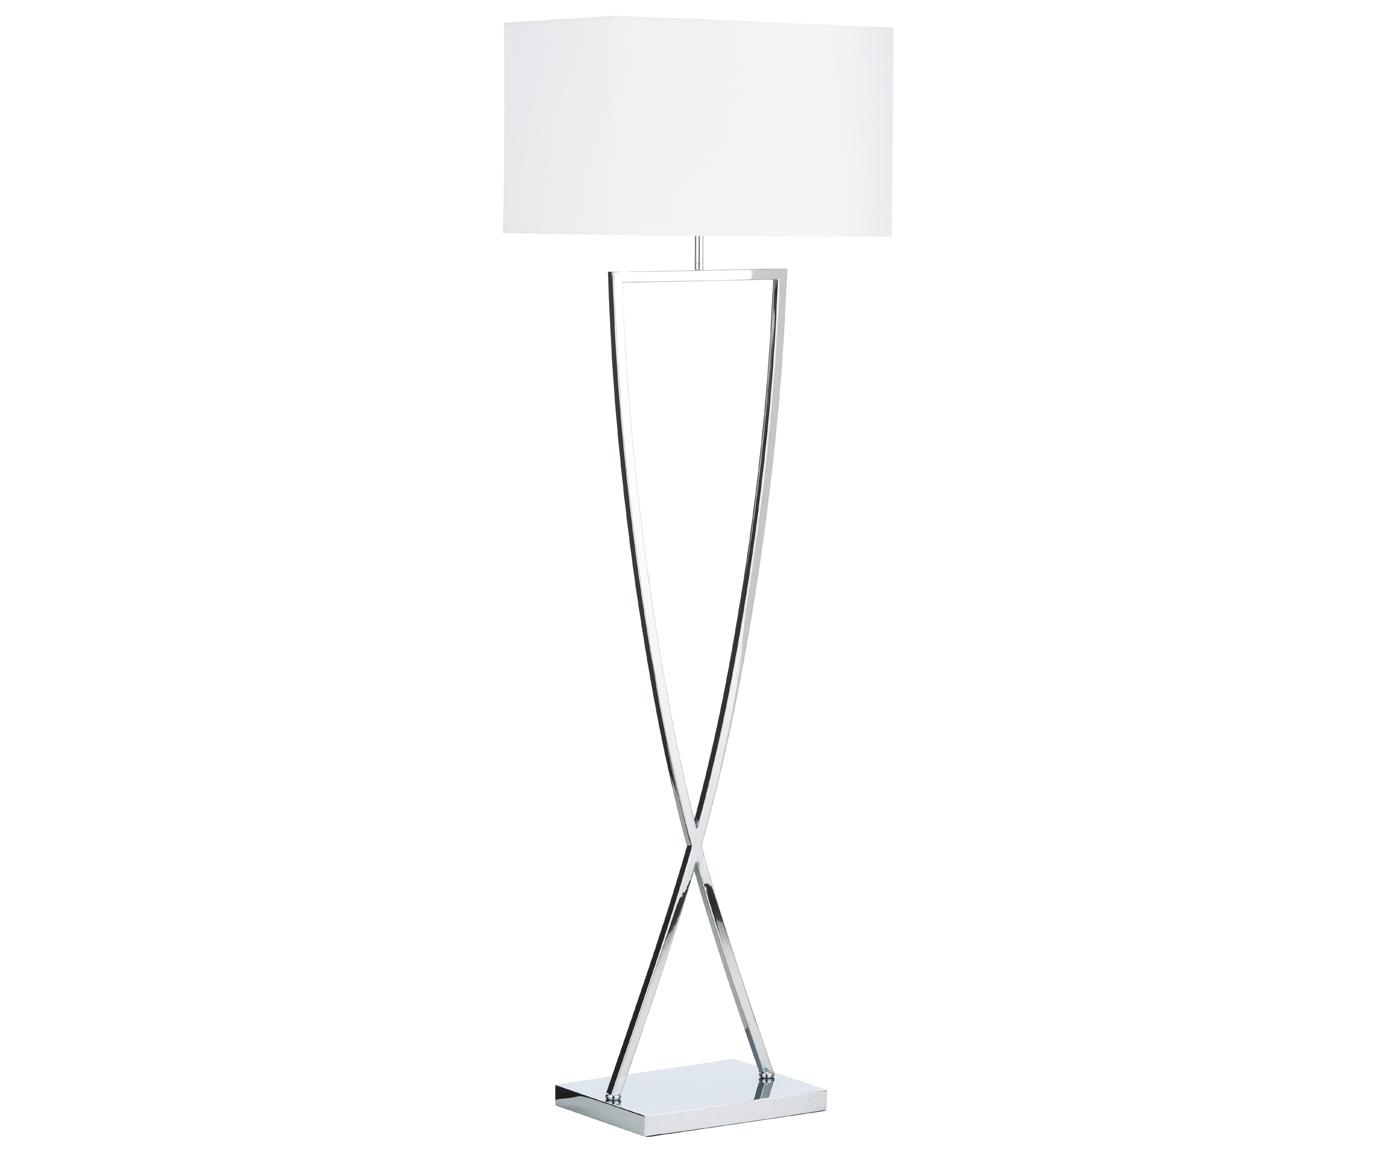 Stehlampe Toulouse in Silber, Lampenschirm: Textil, Chrom, Weiss, 50 x 157 cm